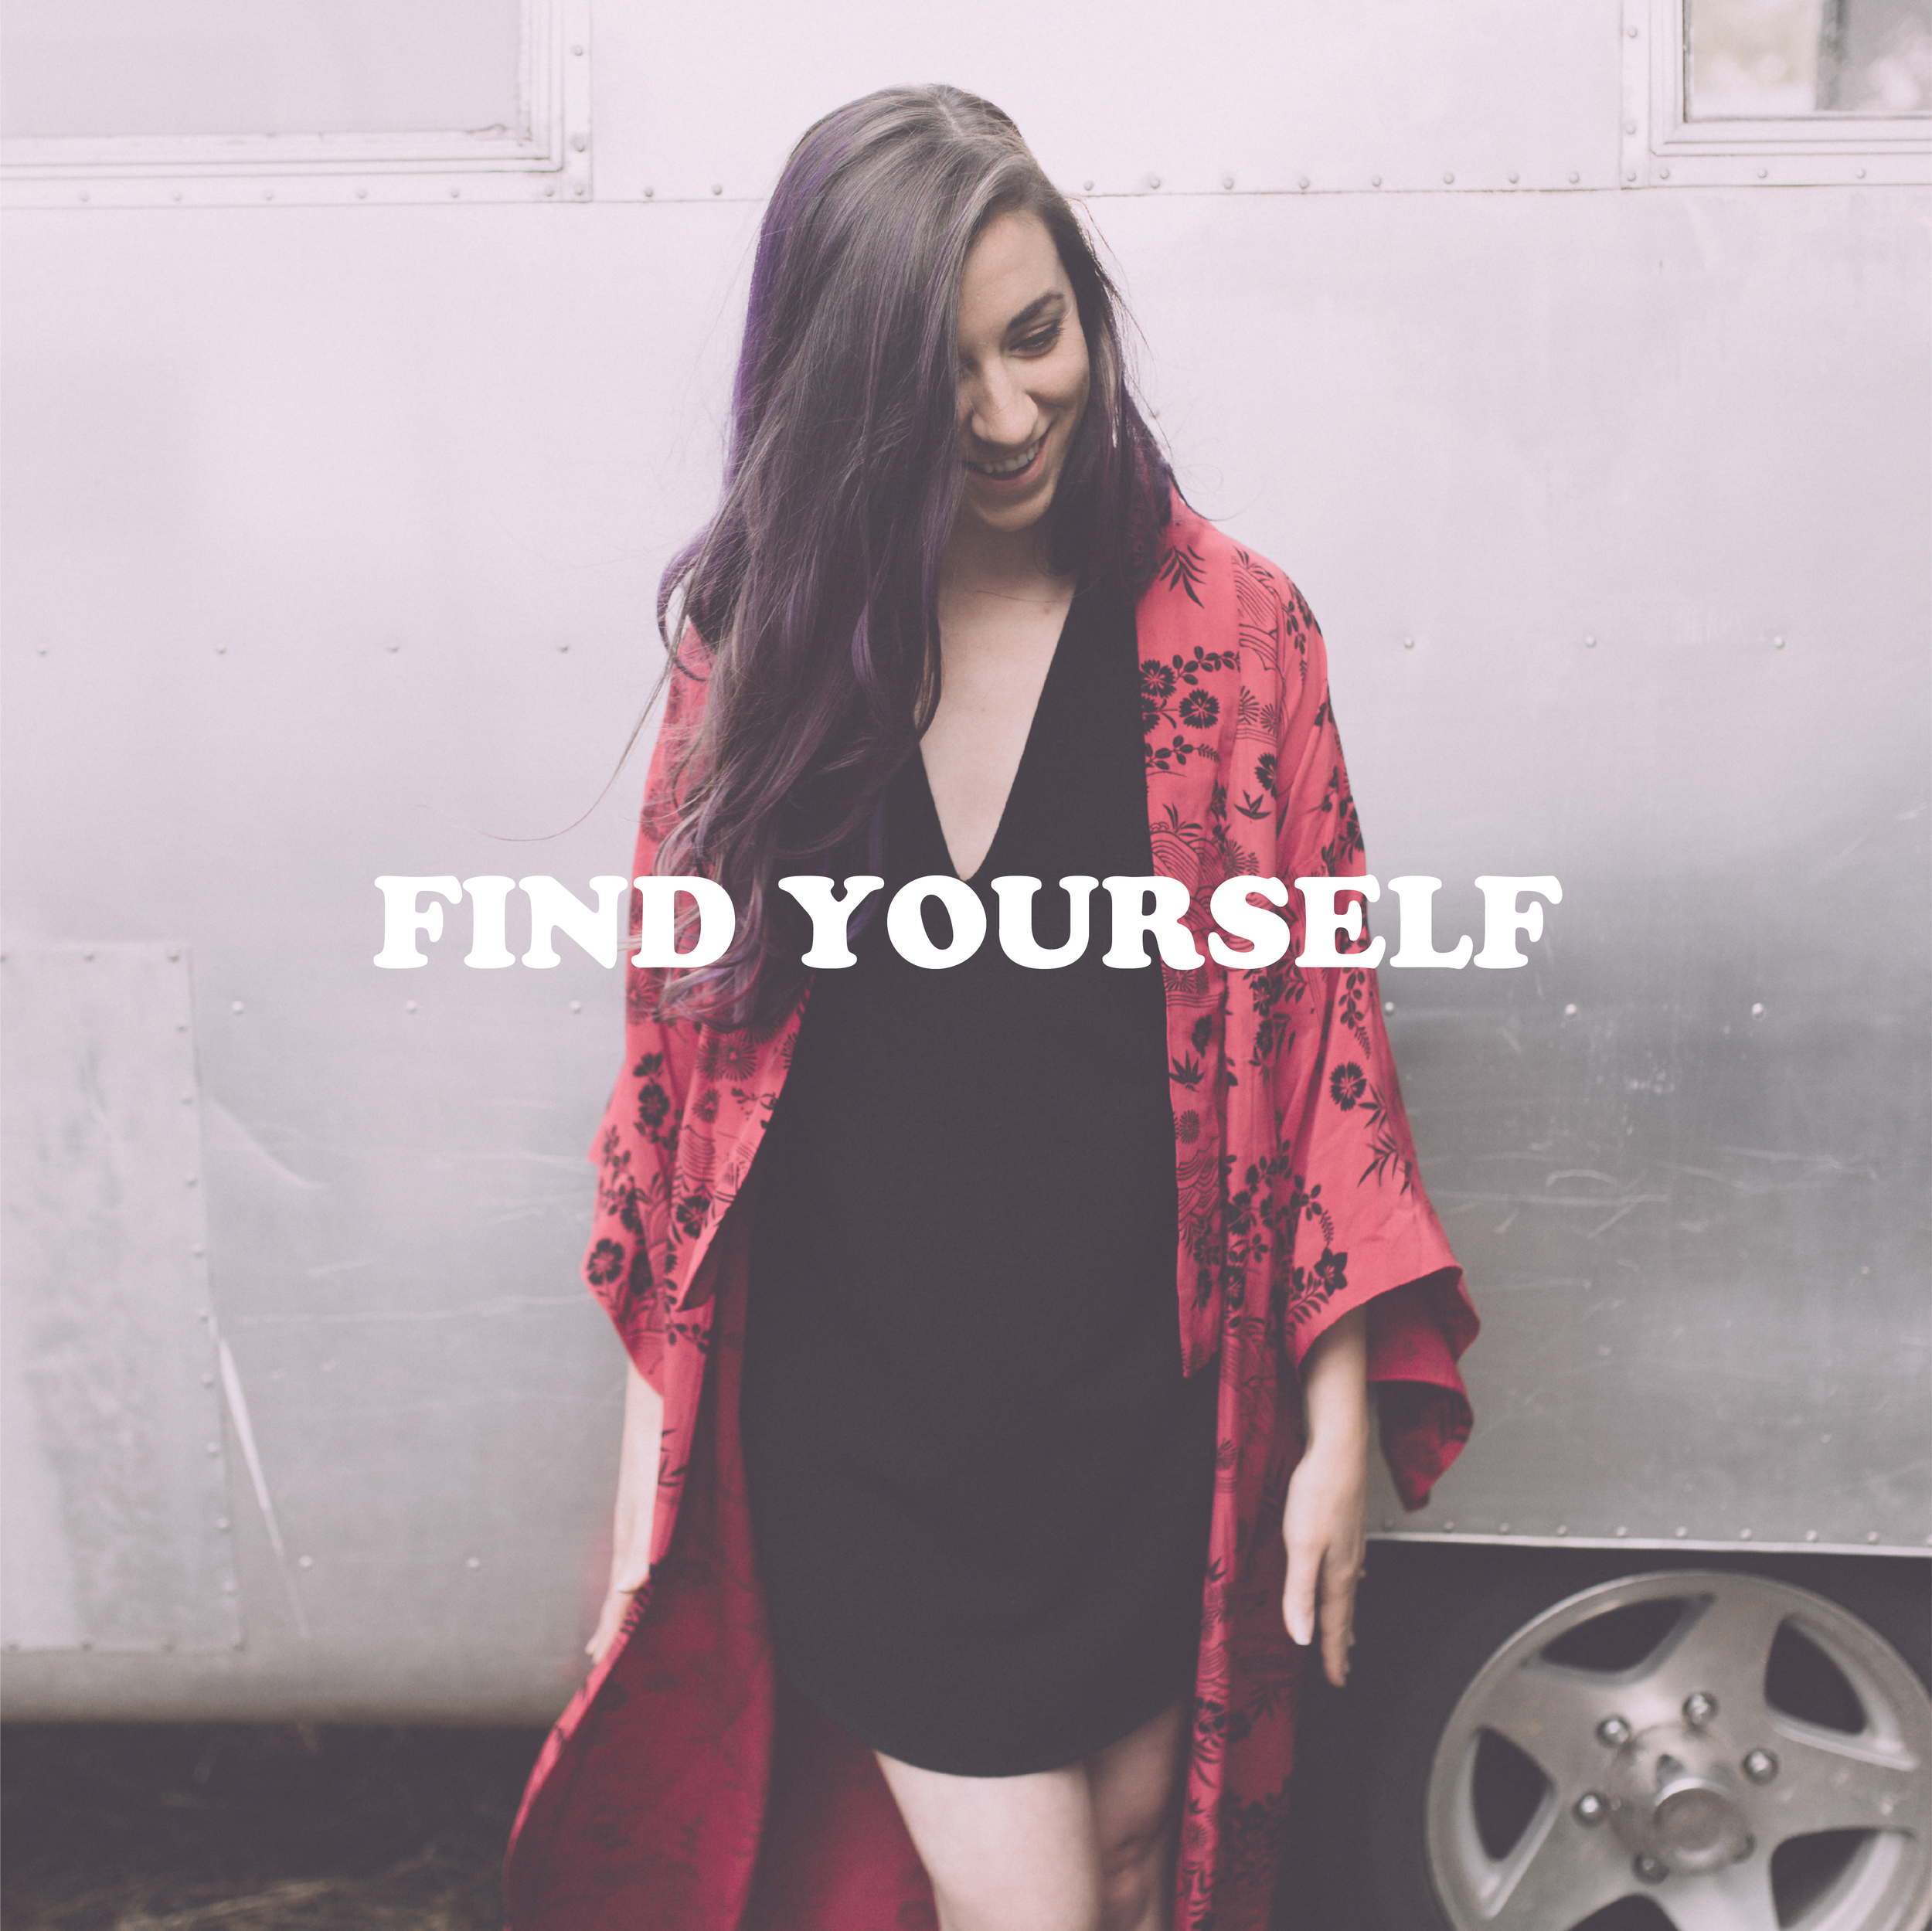 Find Yourself | 1:1 Coaching for Enneagram Type 4s with Genevieve Nalls, The Classy Hippie